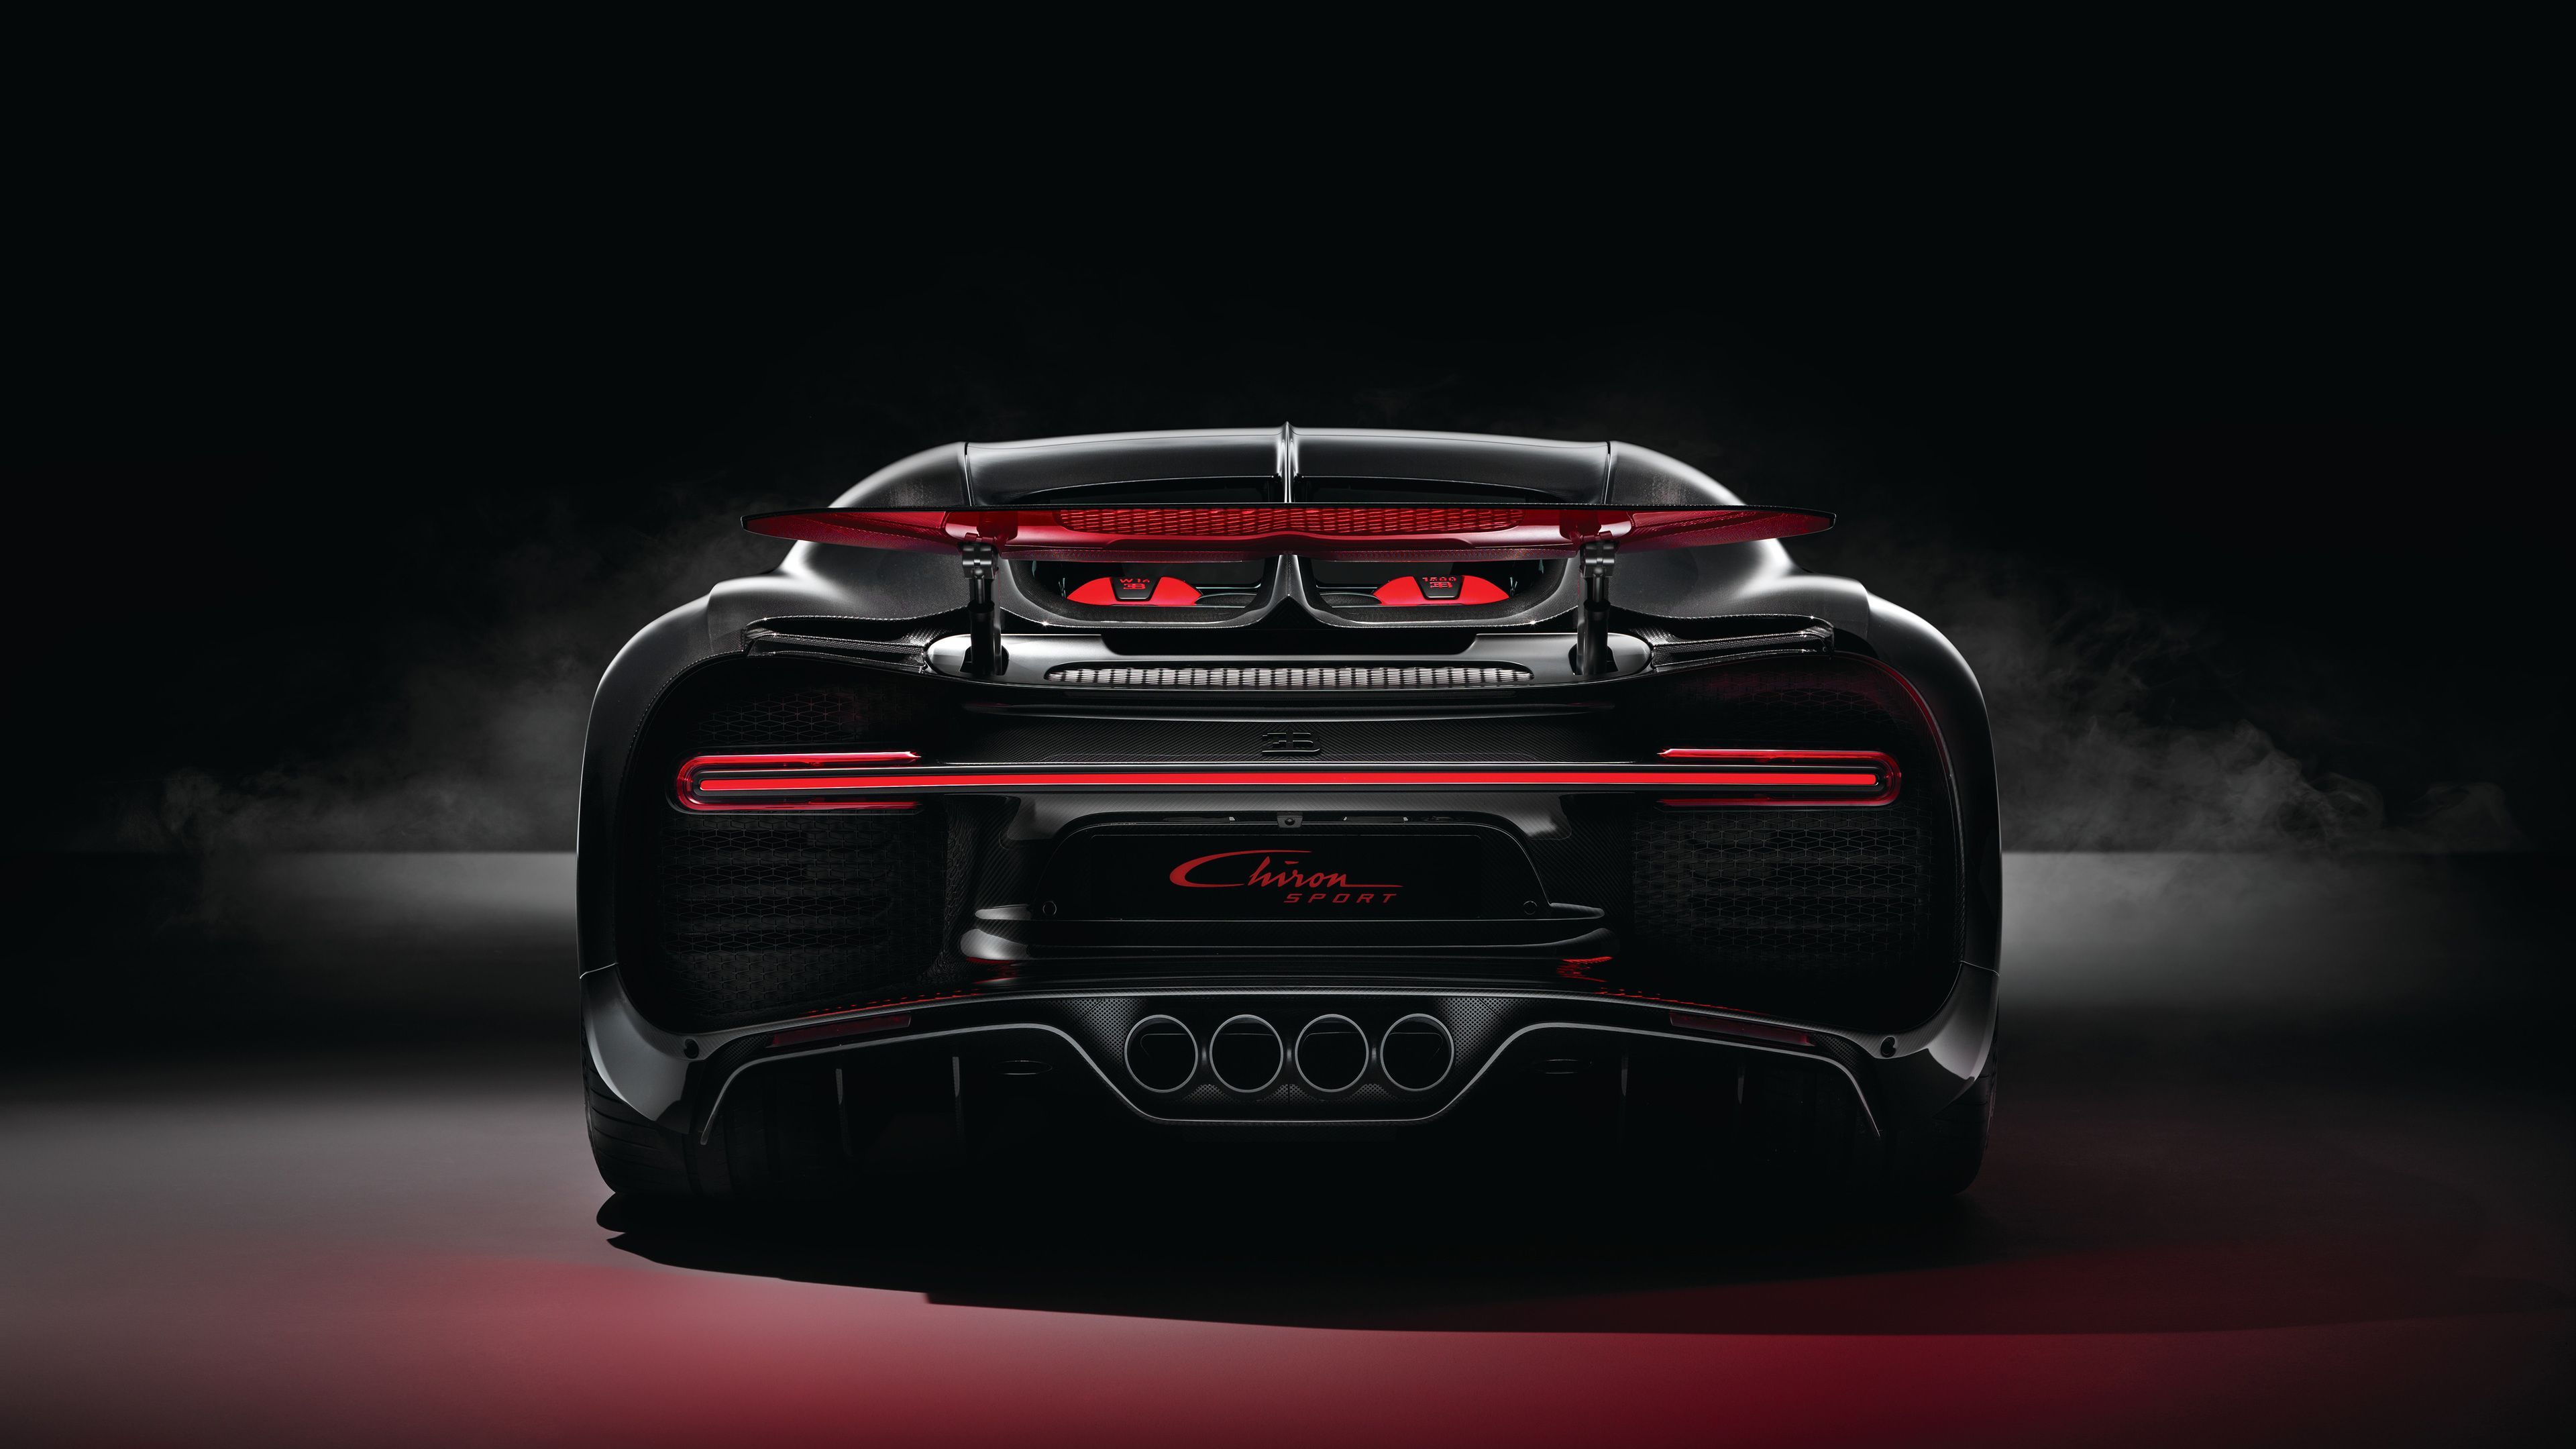 Bugatti Chiron Sport 2018 Rear Lights 4k Hd Wallpapers Cars Wallpapers Bugatti Wallpapers Bugatti Chiron Bugatti Wallpapers Bugatti Chiron Bugatti Chiron Gt